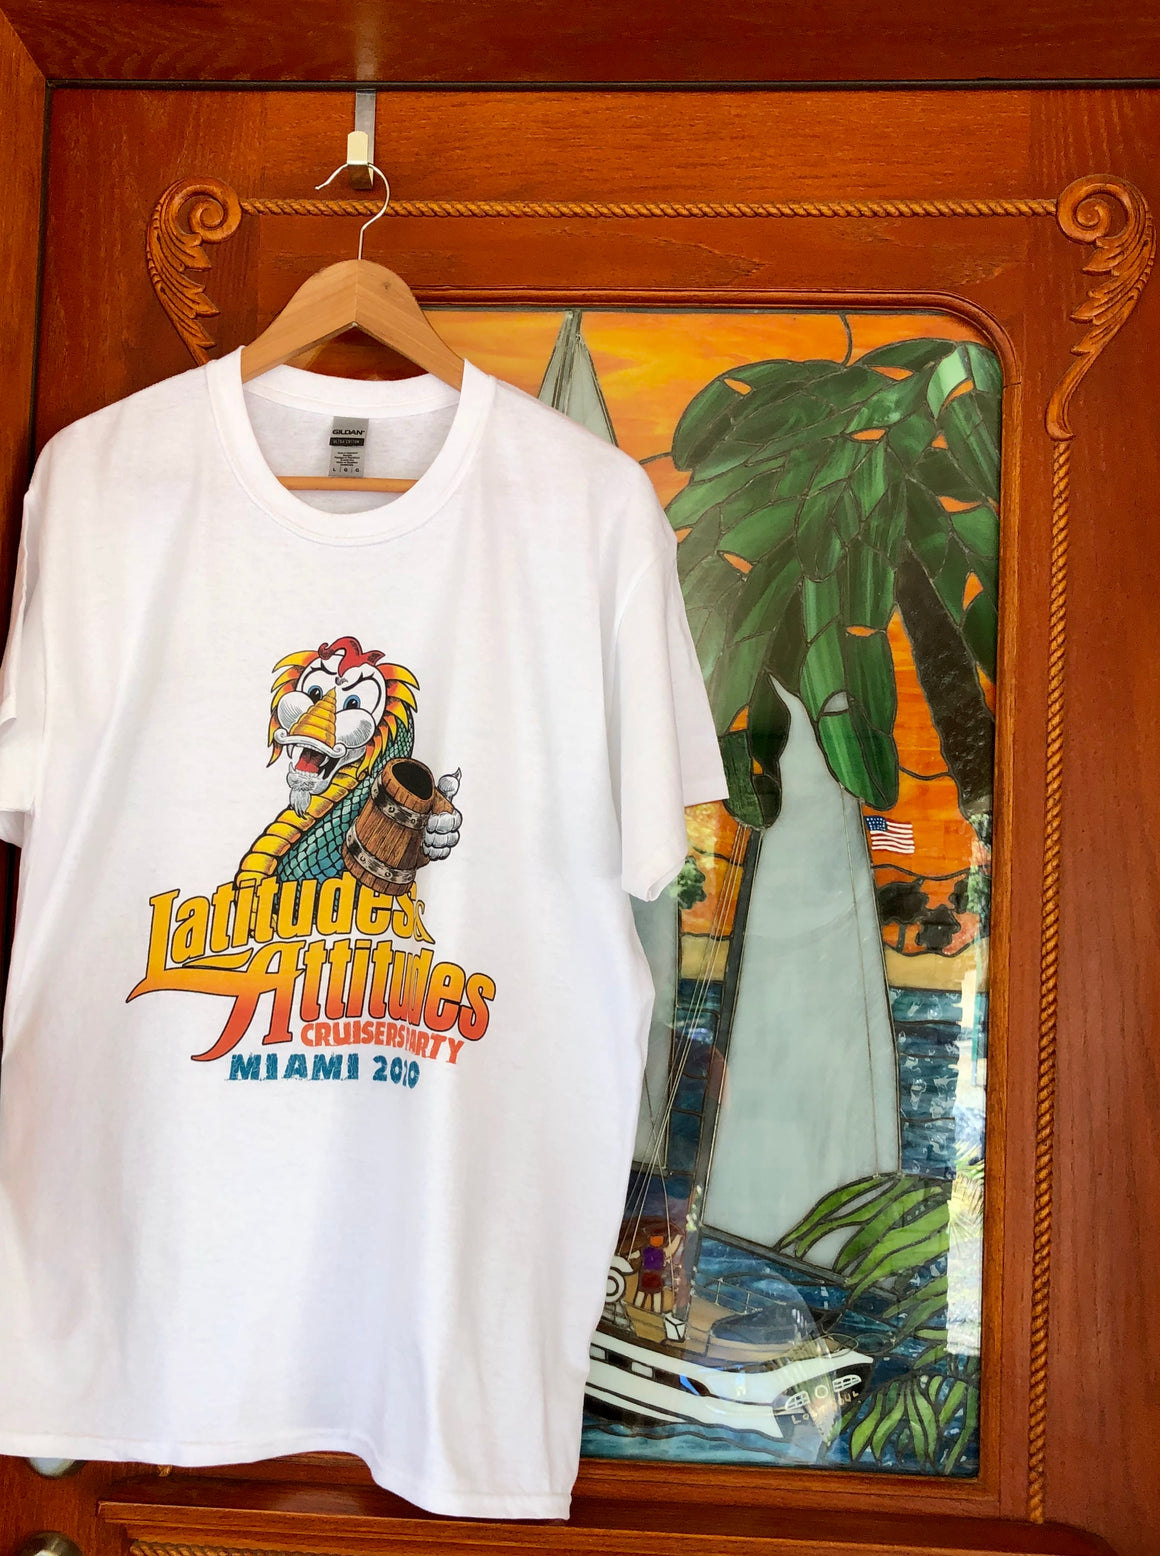 Party Shirt - Miami Boat Show